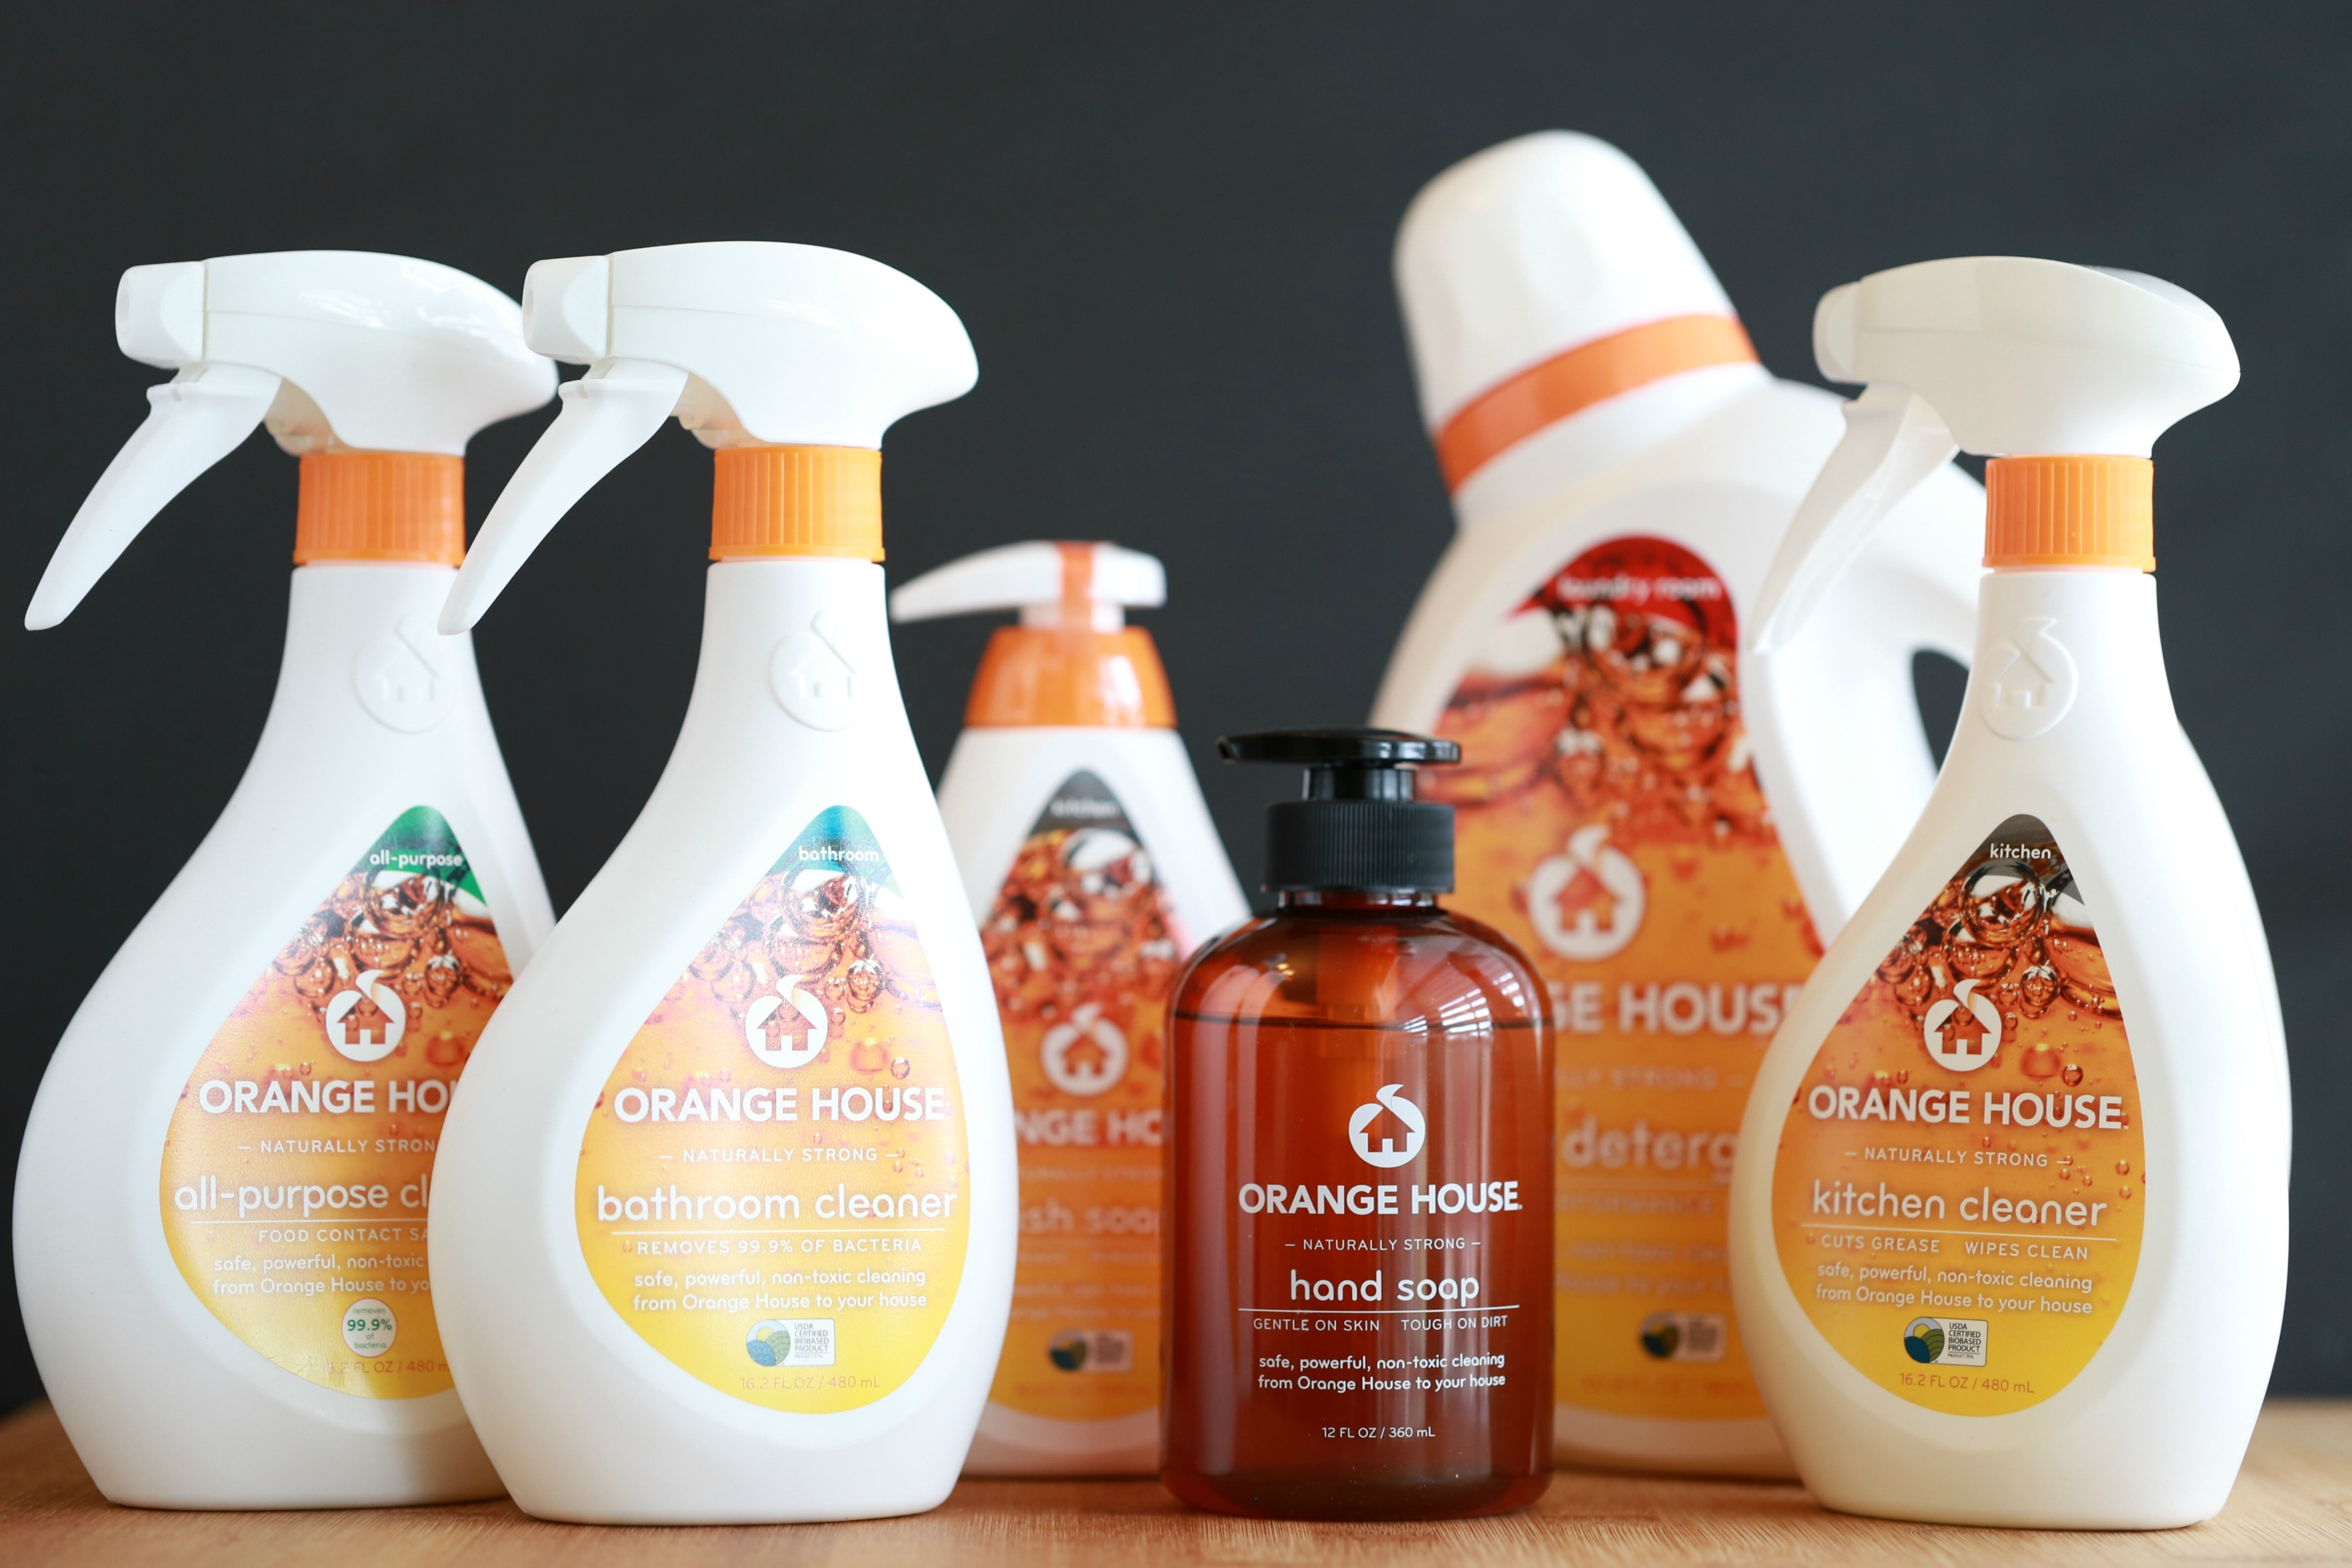 When keeping a clean home is a top priority, the products you used matter a lot. Take the Orange House Challenge and see for yourself.